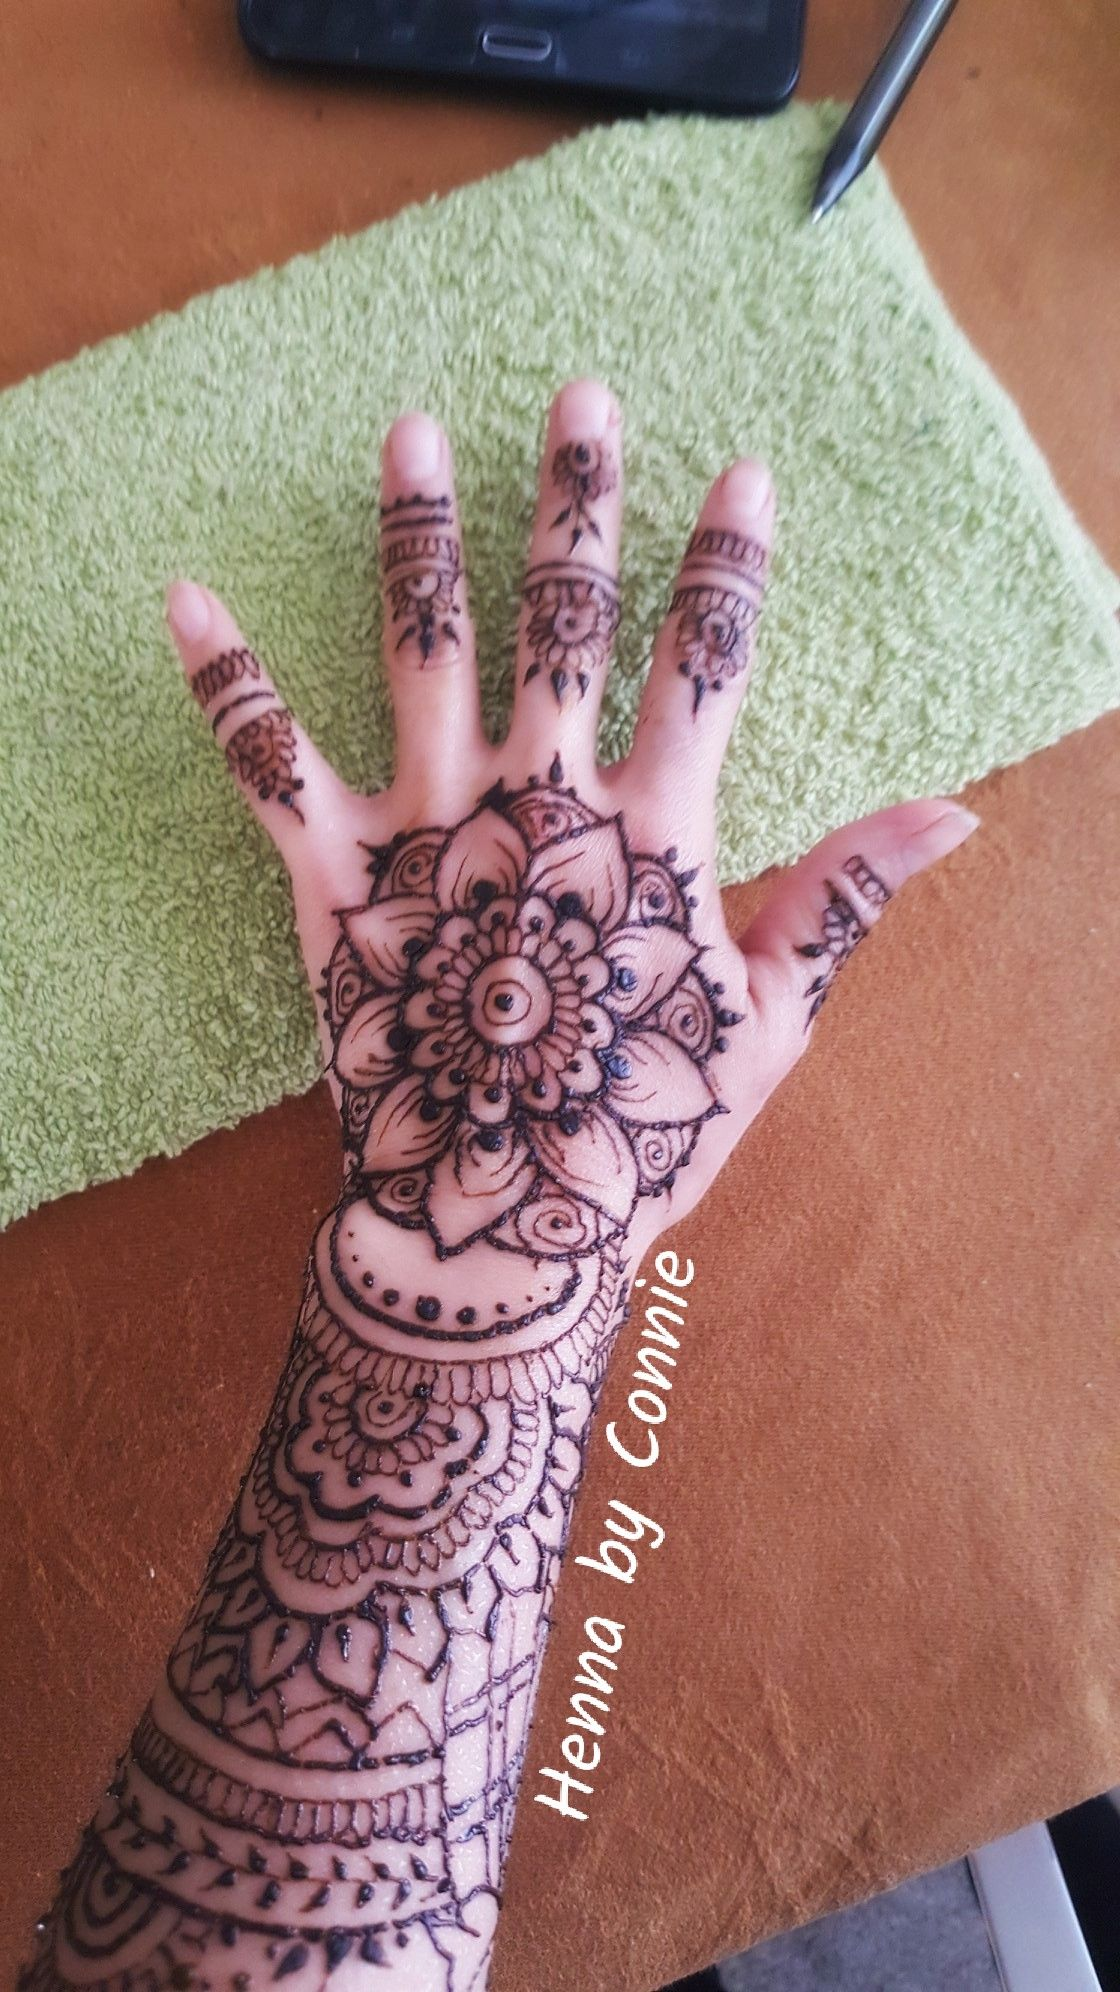 Pin by alicia abagat on henna pinterest hennas tattoo and henna